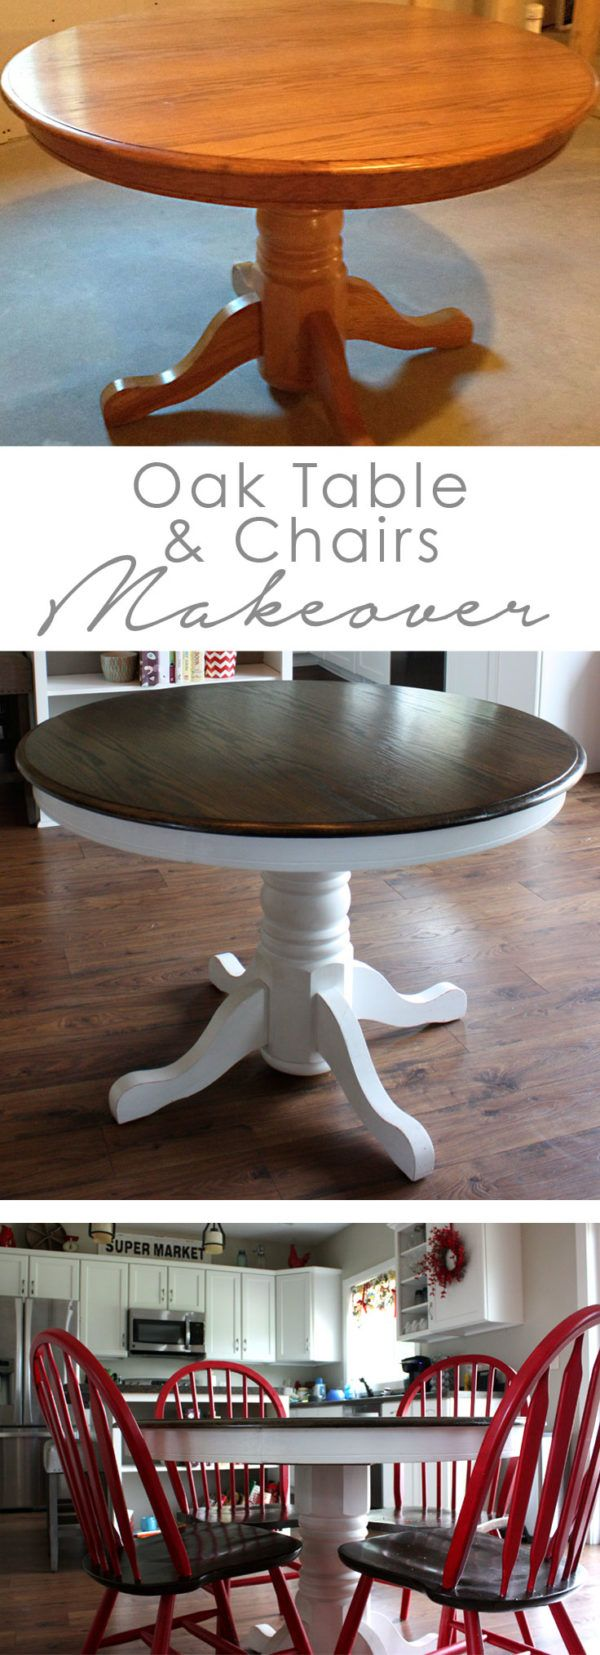 Room DIY Oak Table And Chair Makeover